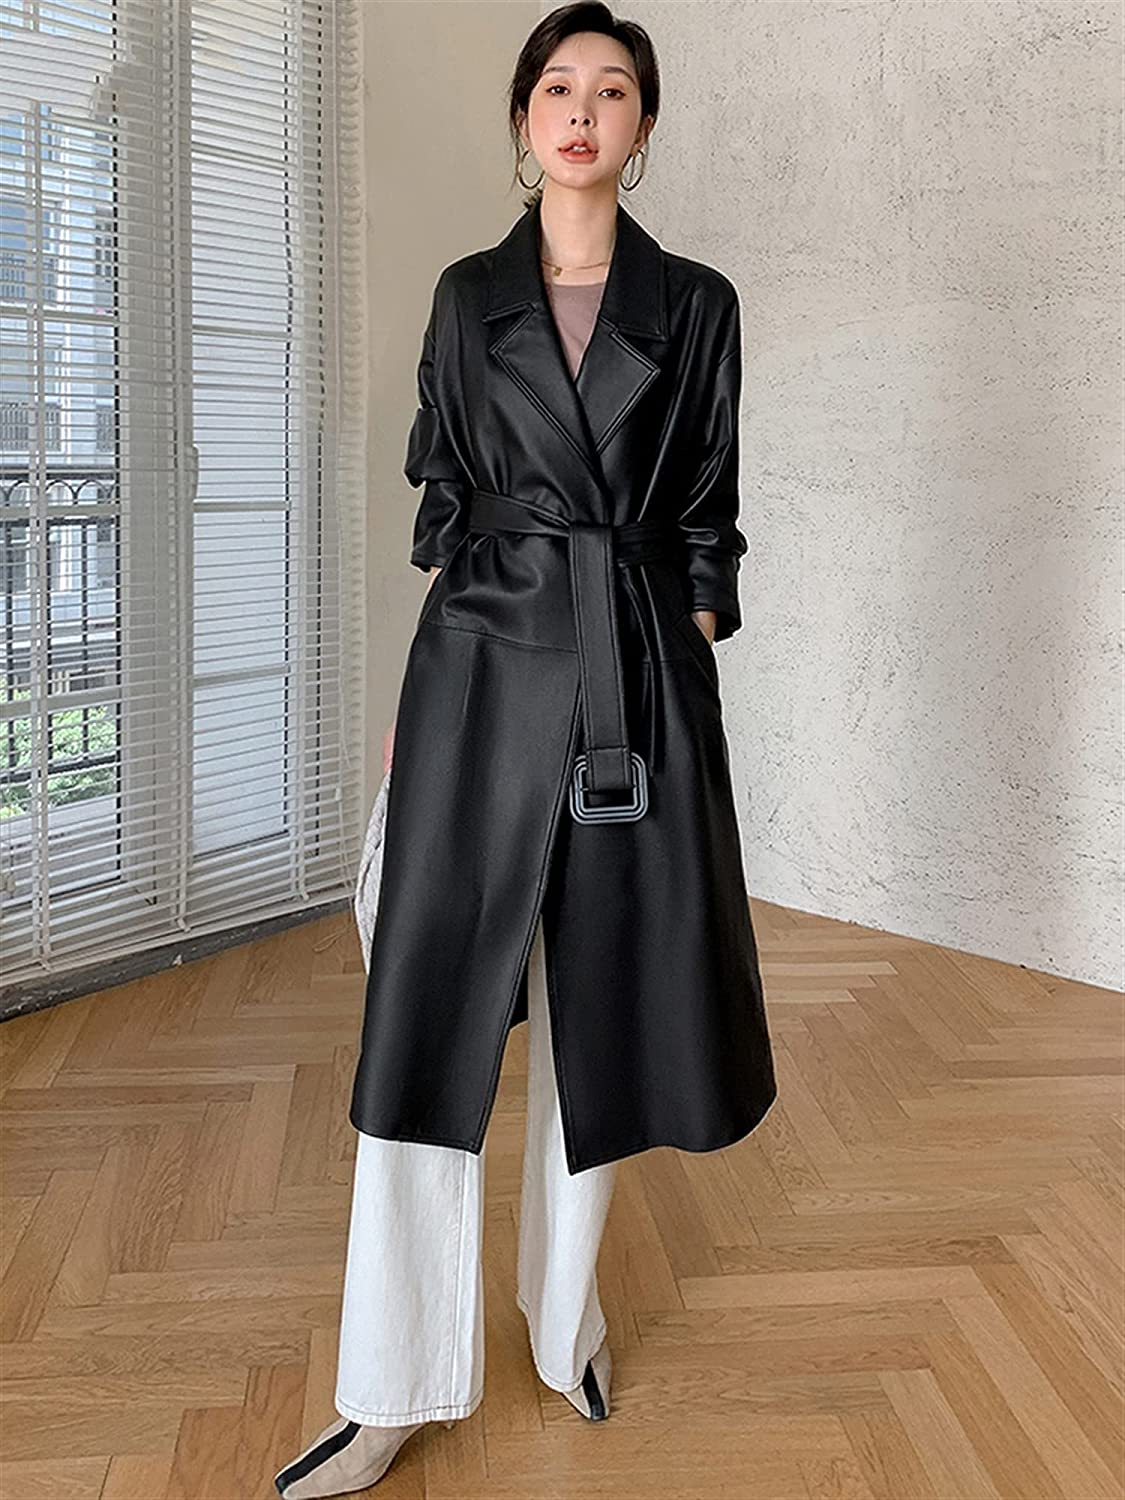 KSFBHC Autumn Long Waterproof Faux Leather Trench Coat for Women Belt Casual Loose Clothing (Color : Black, Size : XX-Large)